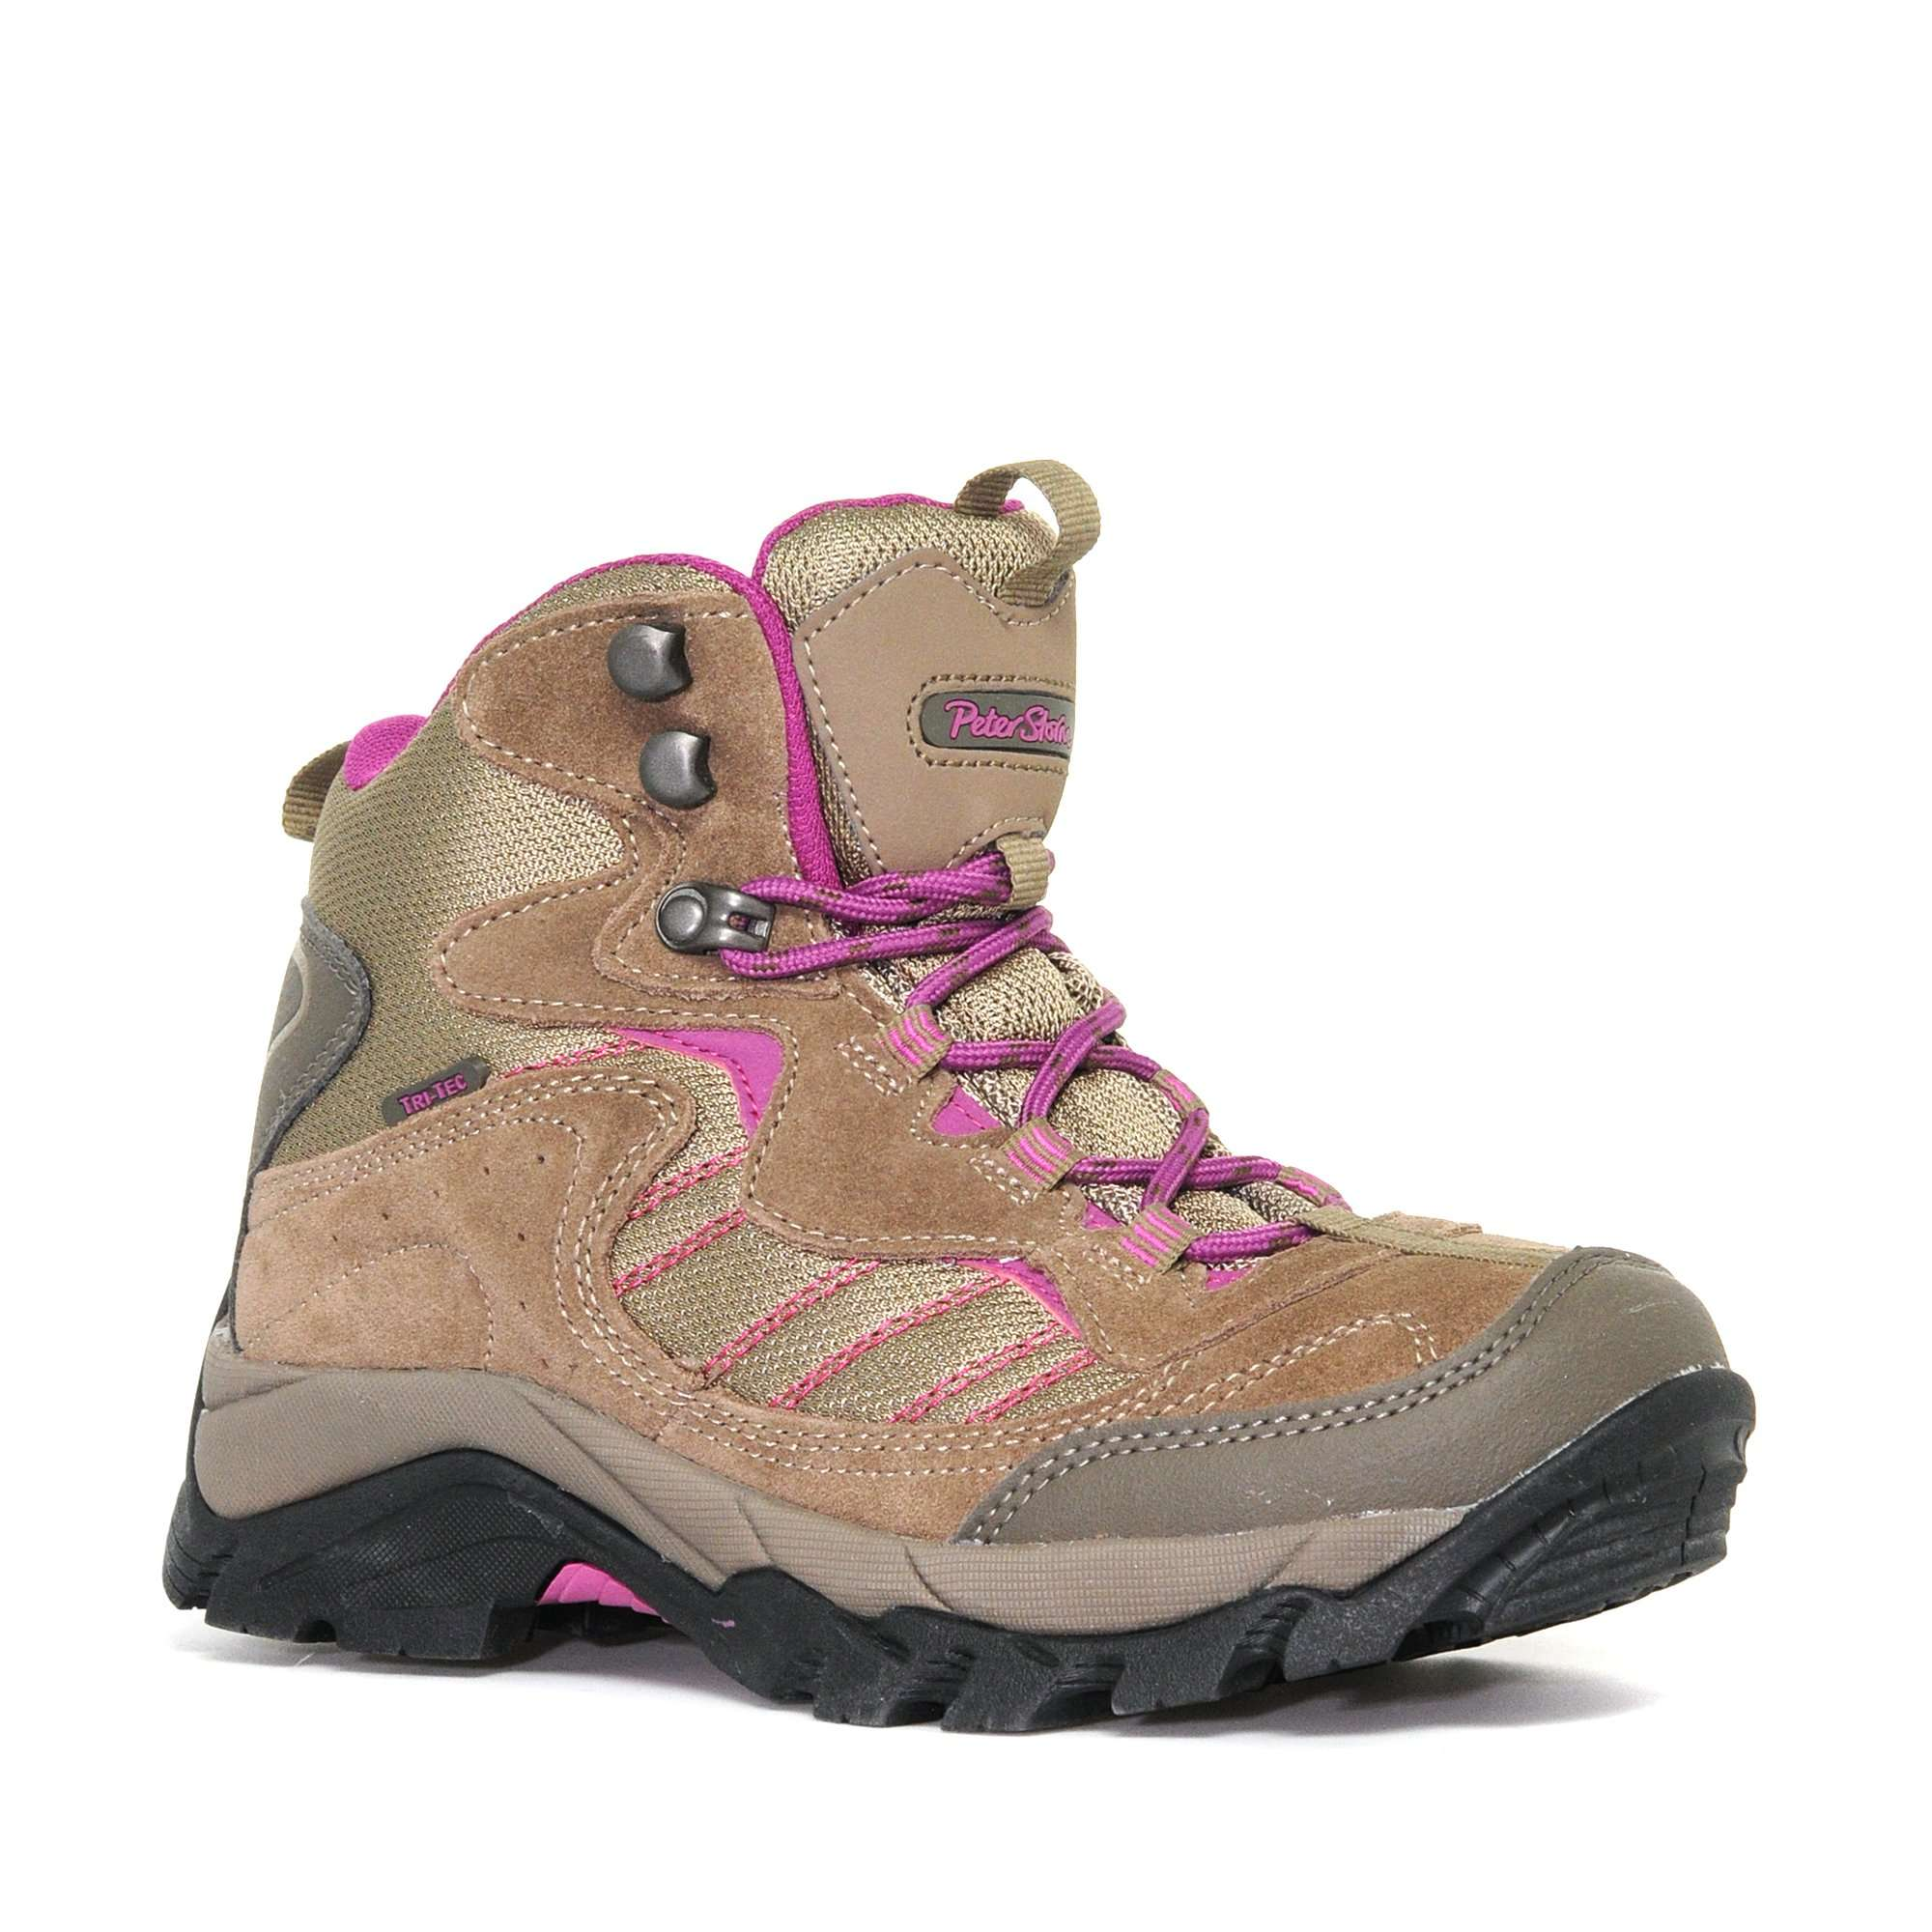 PETER STORM Girls' Ormskirk Walking Boots